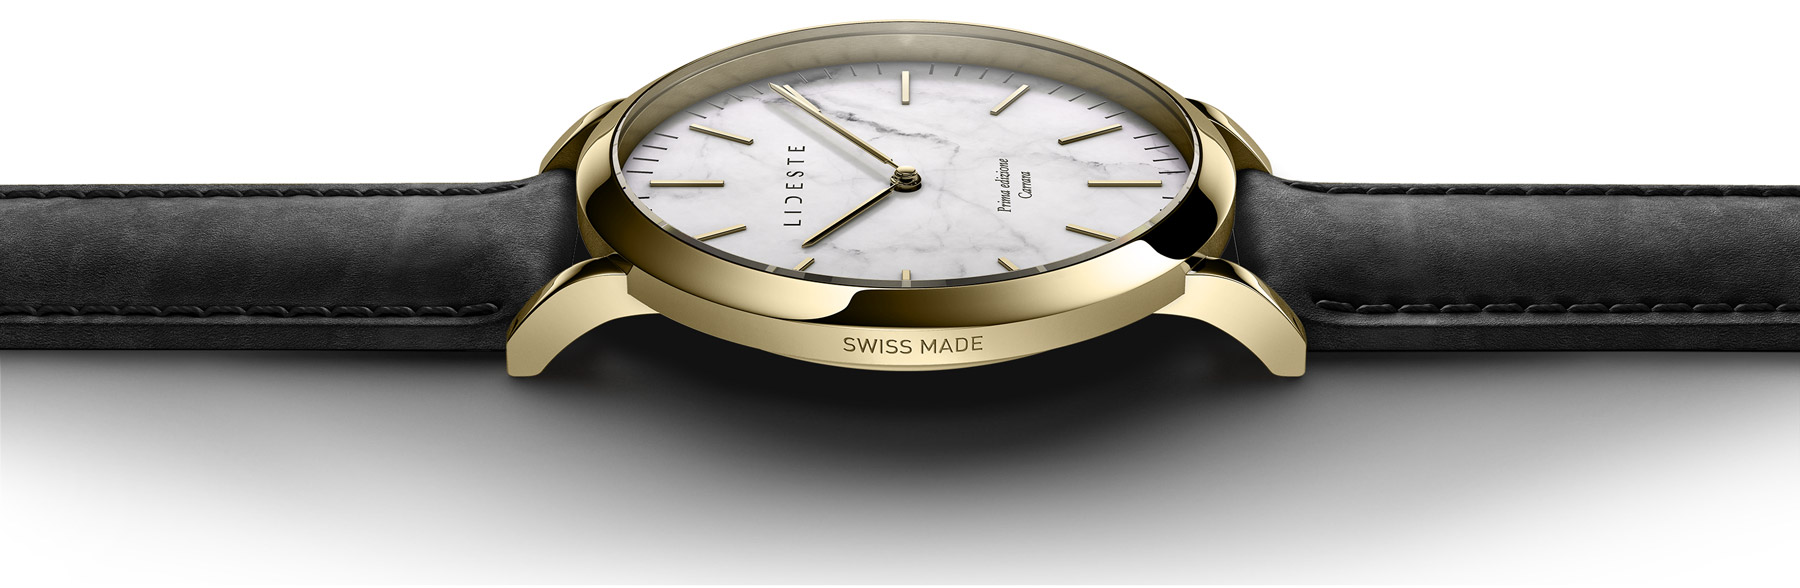 gold-leather-watch-womens-34mm-table-view